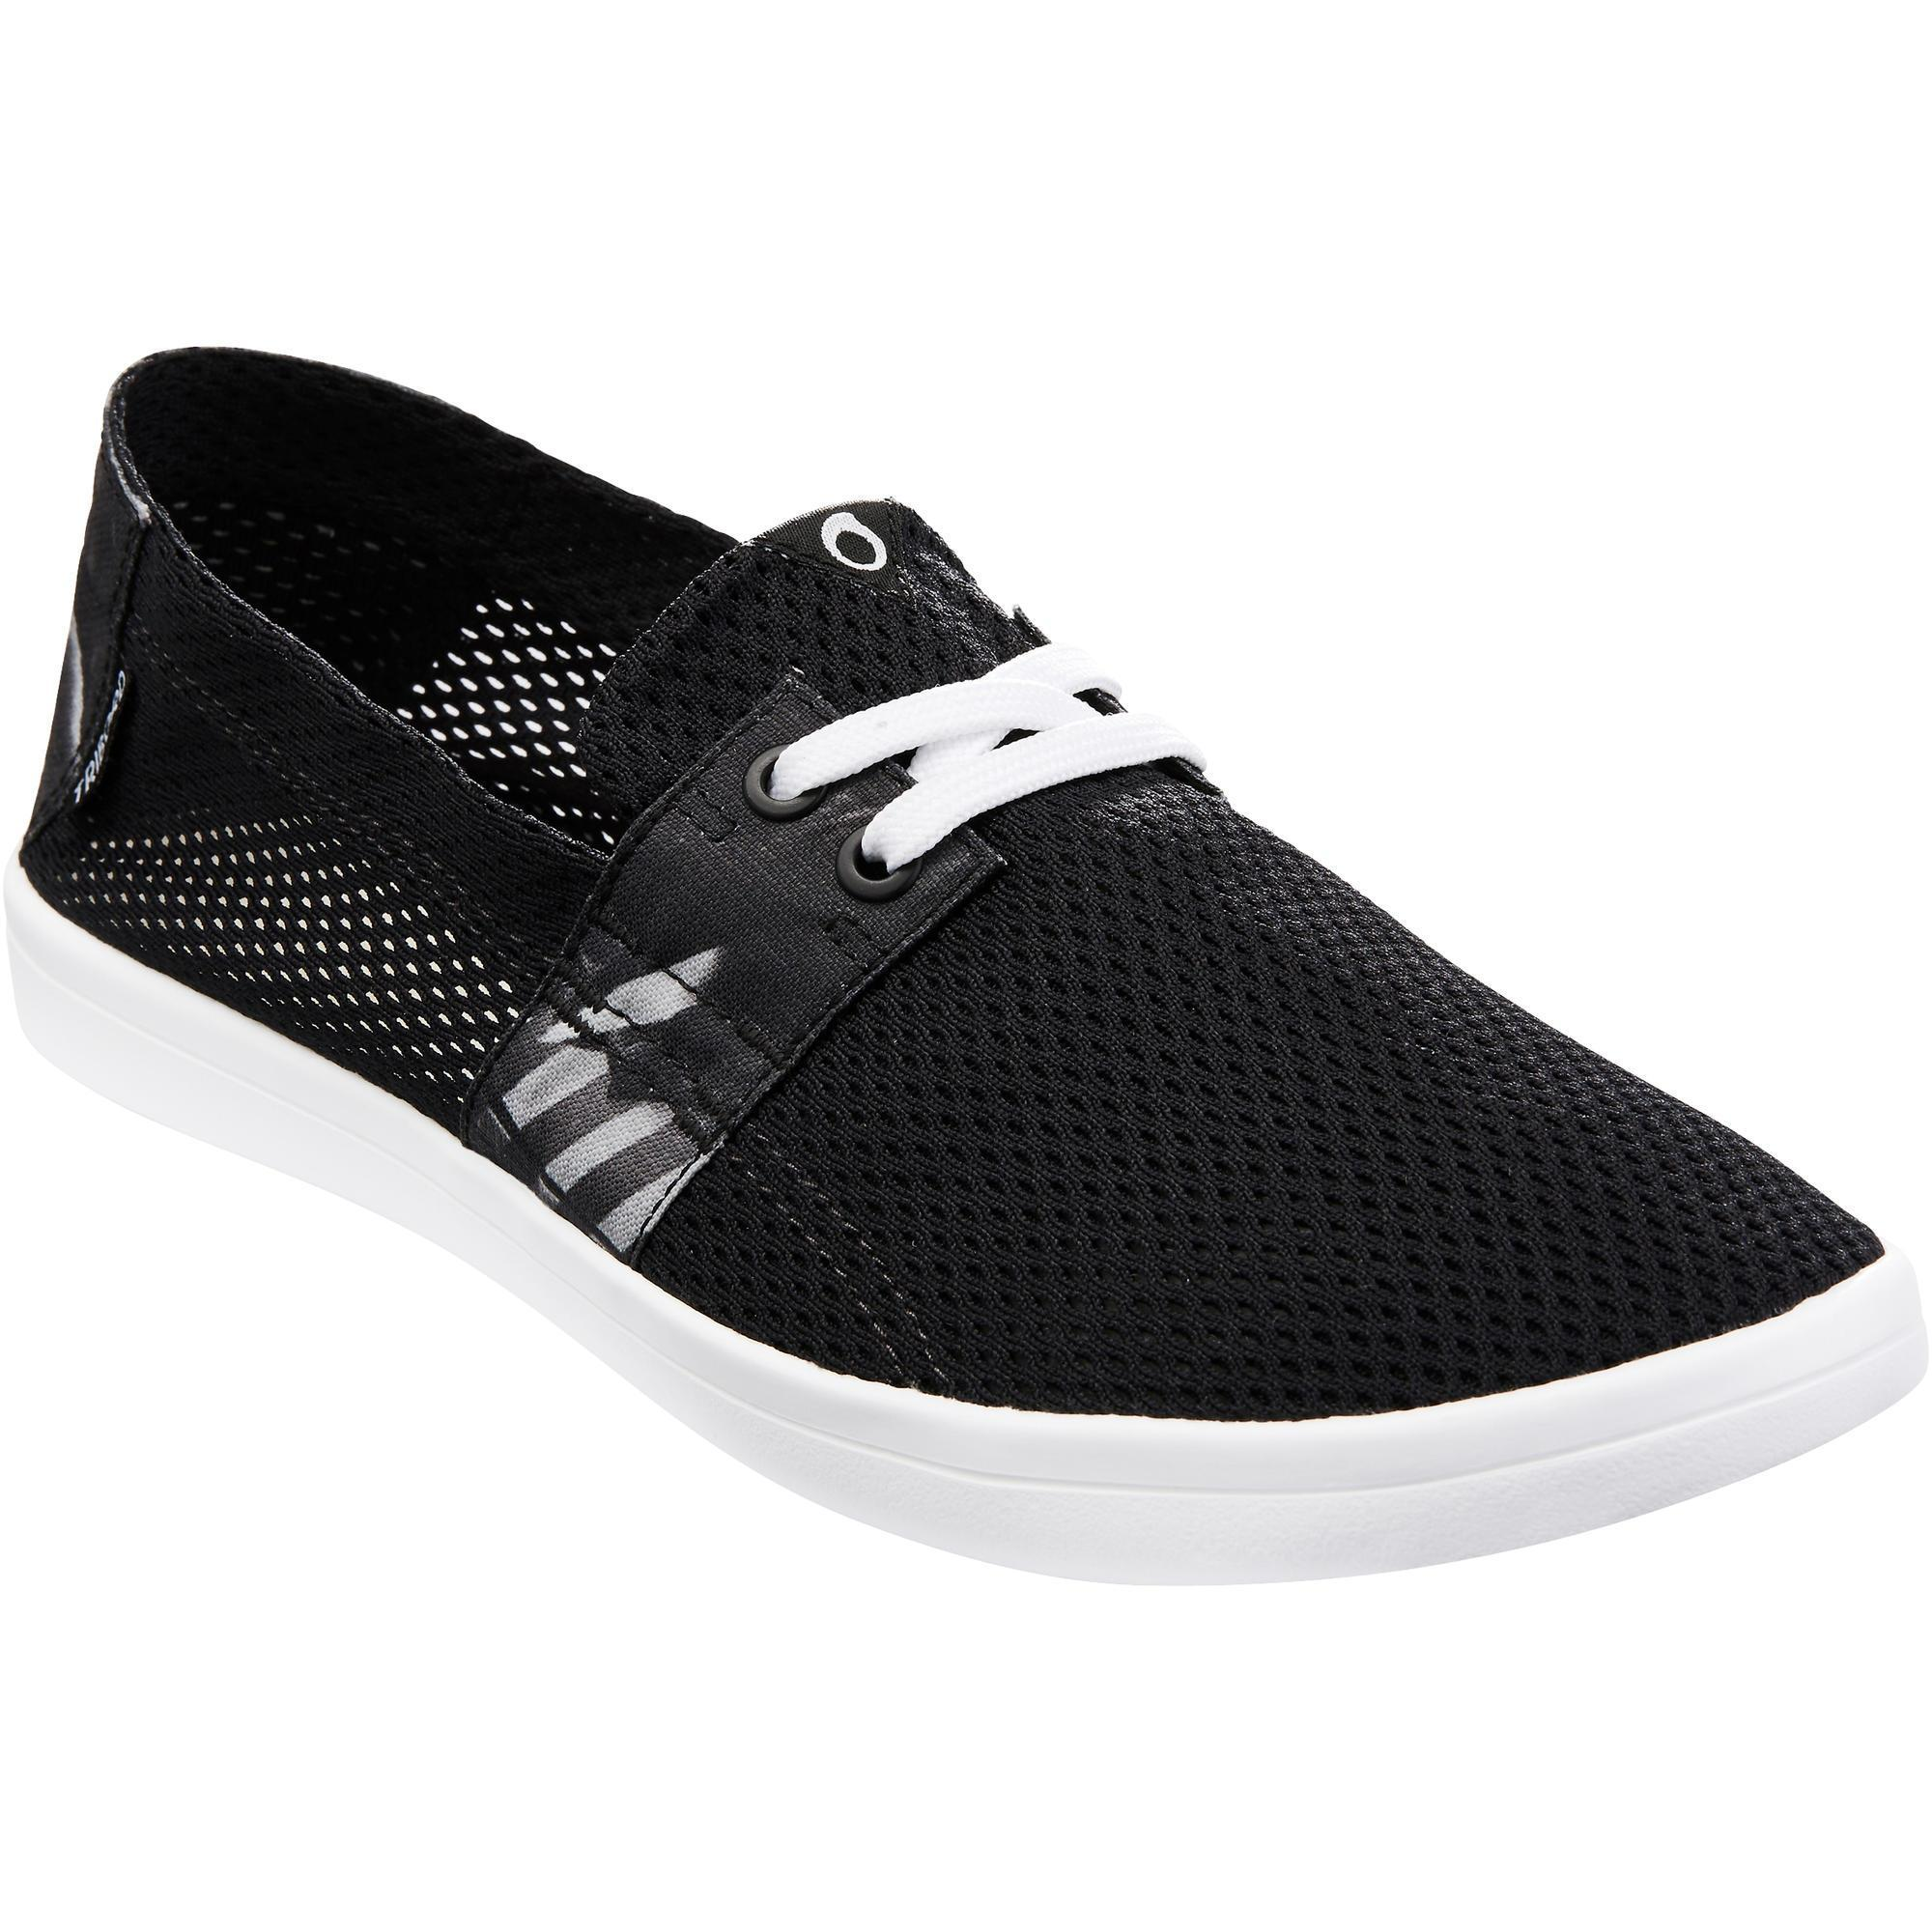 3e2bfab84 man shoes - Decathlon